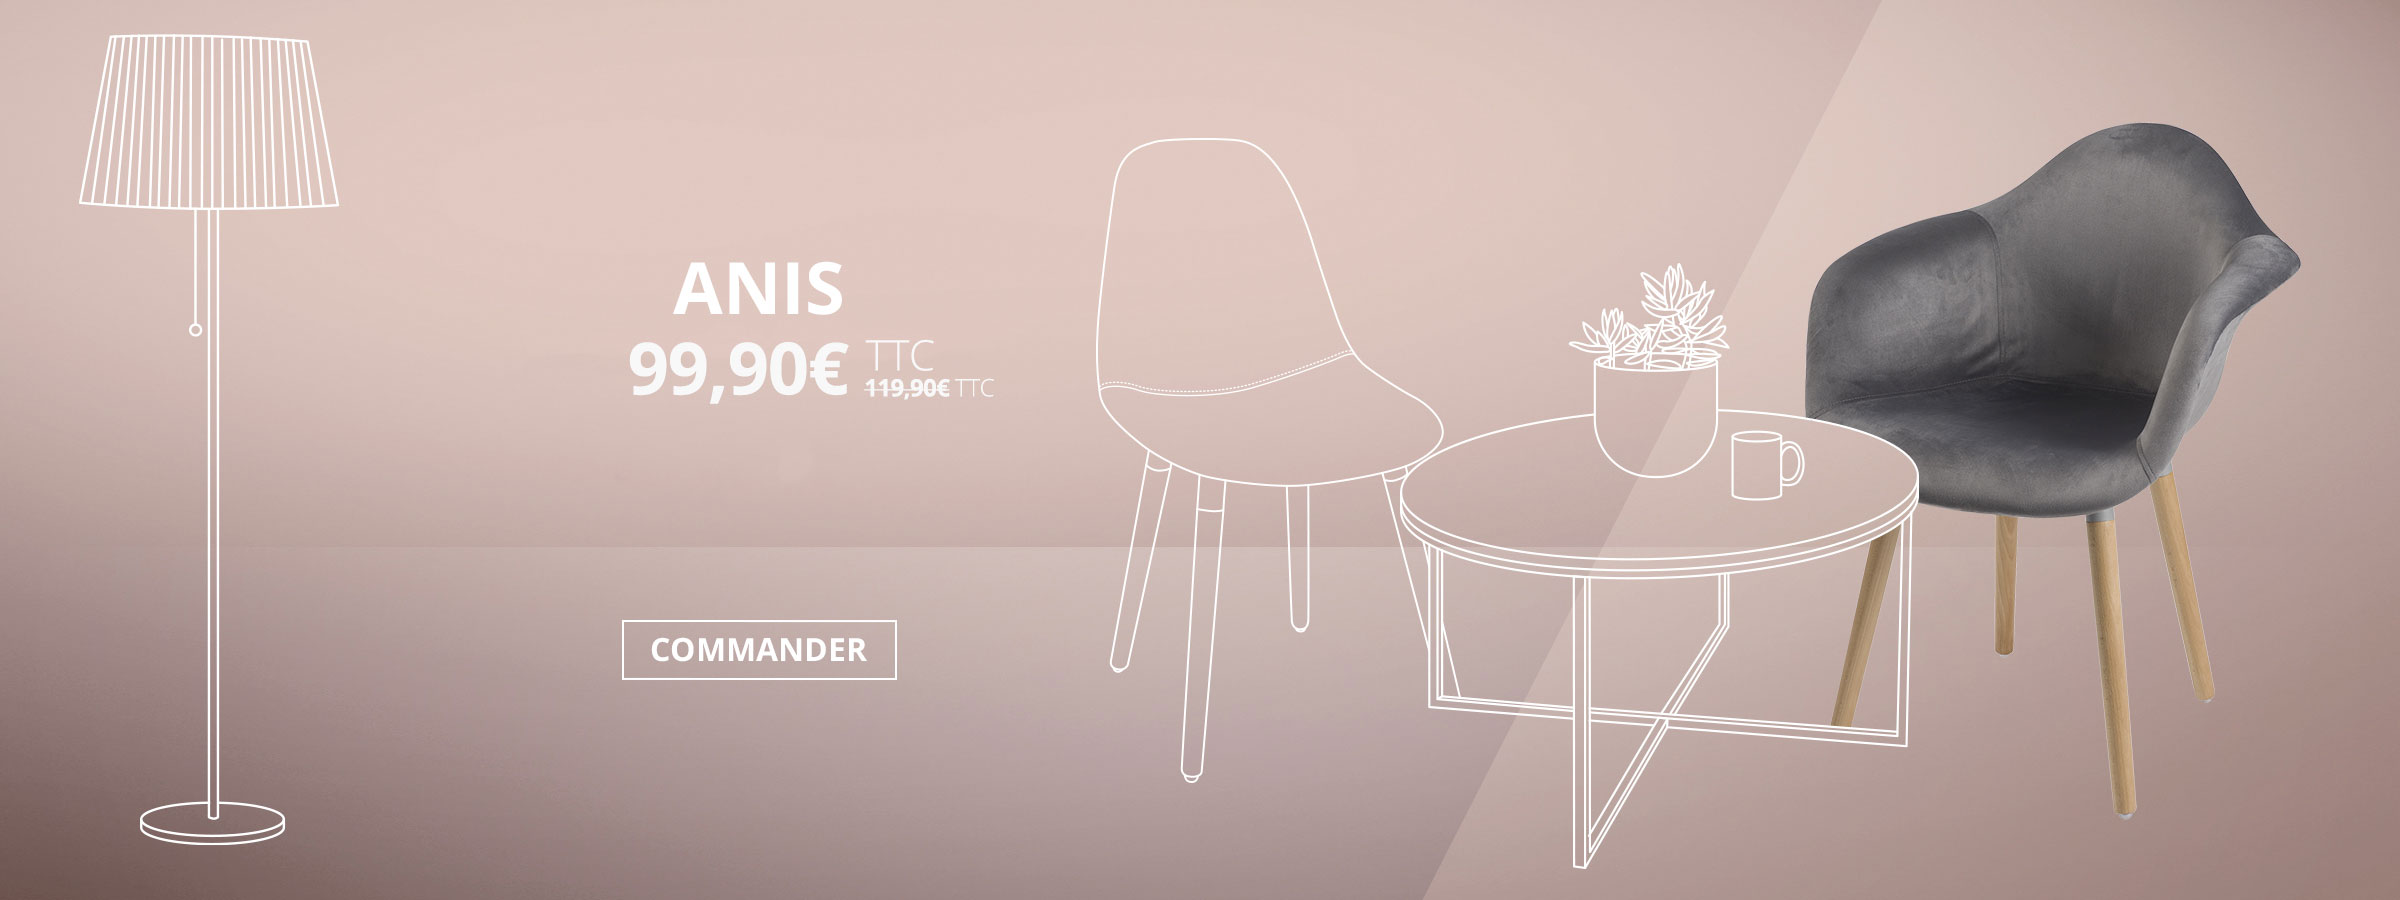 190121_2400x900-HP_chaises-velours-accoudoires-soldes_ANIS